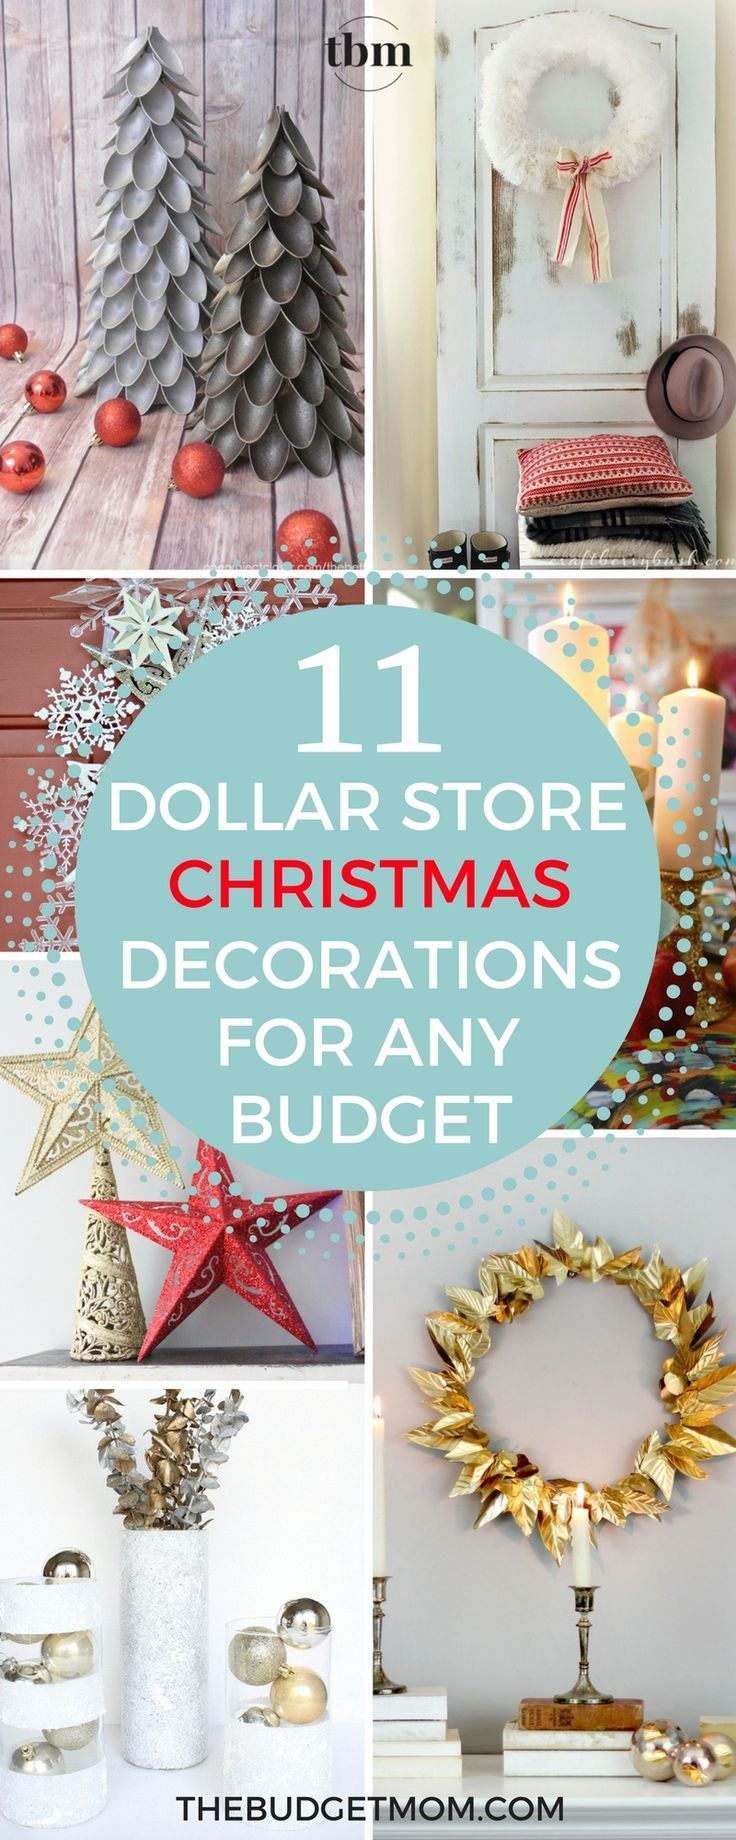 For christmas decorations and outdoor christmas decorations shop with - Best 25 Cheap Christmas Decorations Ideas On Pinterest Cheap Diy Xmas Decorations Xmas Decorations And Diy Xmas Decorations